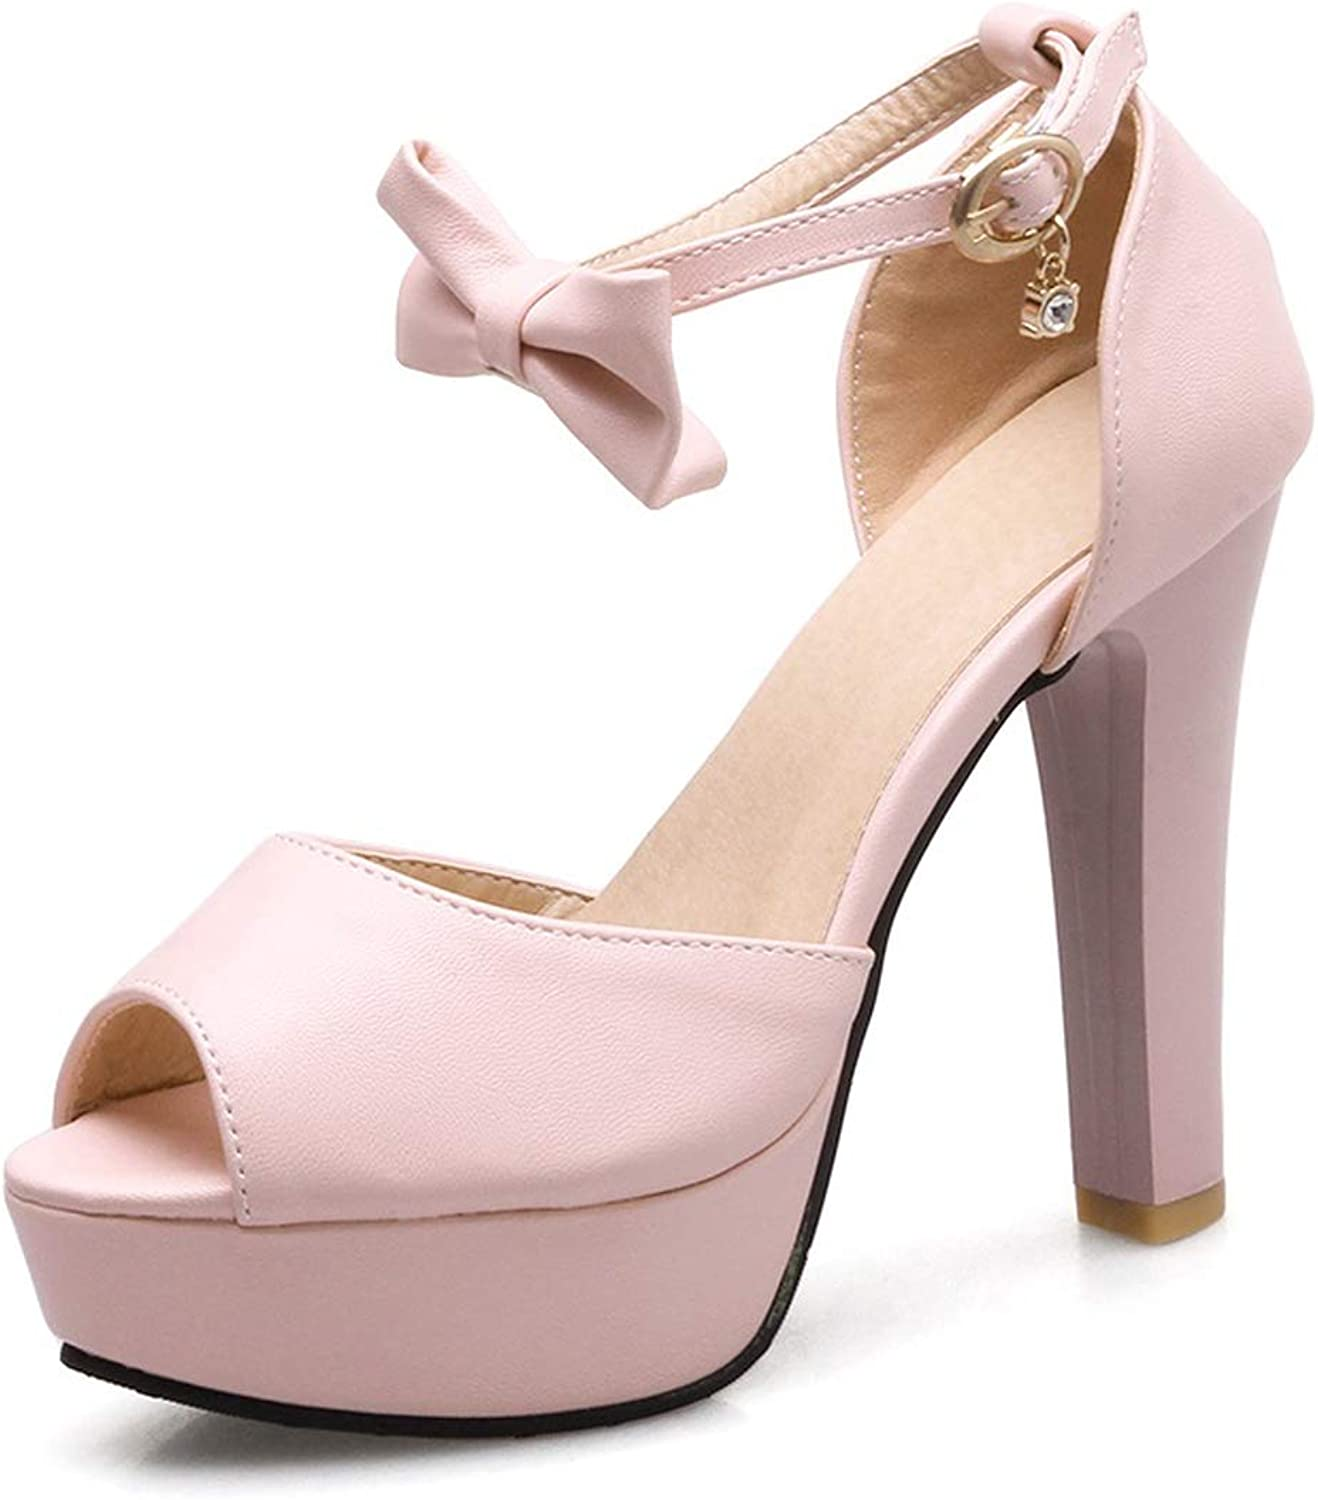 Summer Sweet Butterfly Women Sandals Thick high Heels Platform Solid color Party shoes